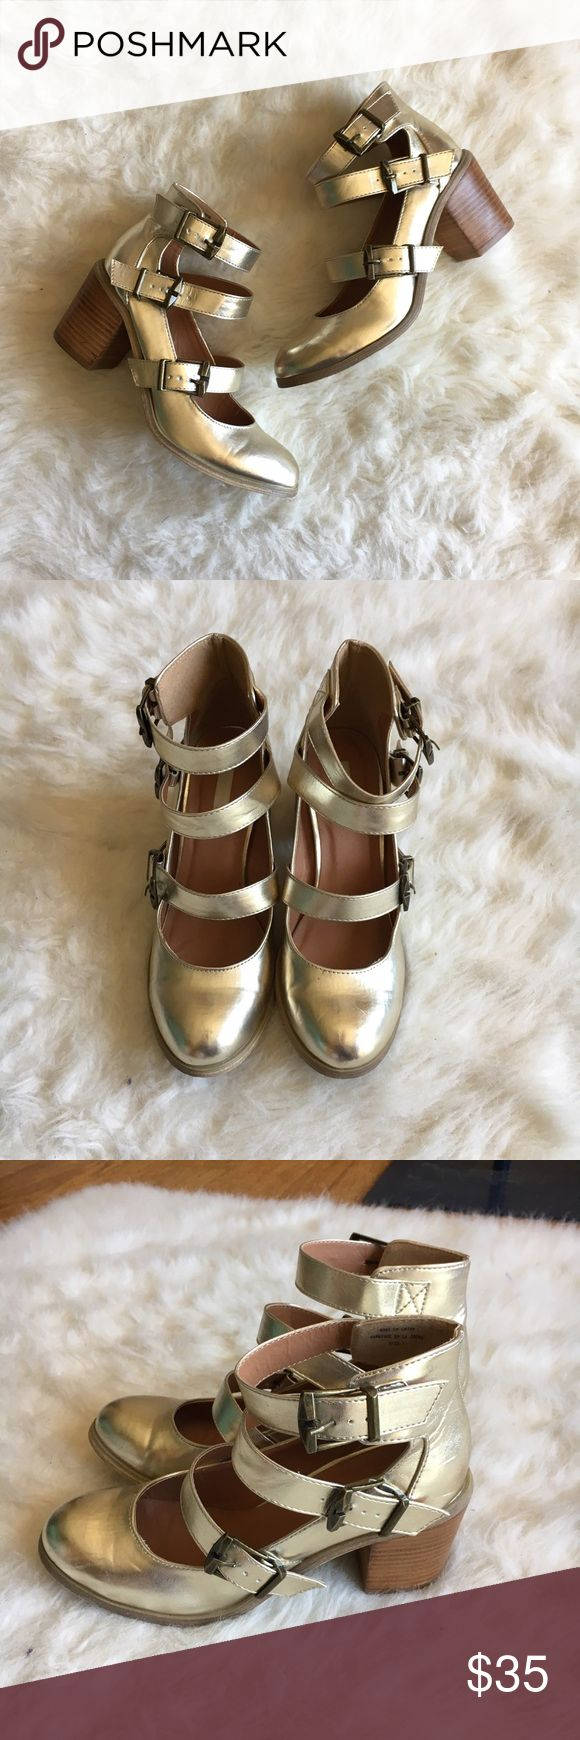 UO Triple Maryjane Gold Metallic Chunky Heels Gently used UO Cooperative Triple Maryjane Gold Metallic Chunky Heels. Super cute and perfect for summer. No major flaws. The inner toe insole is slightly lifted which doesn't effect wearability at all. Urban Outfitters Shoes Heels